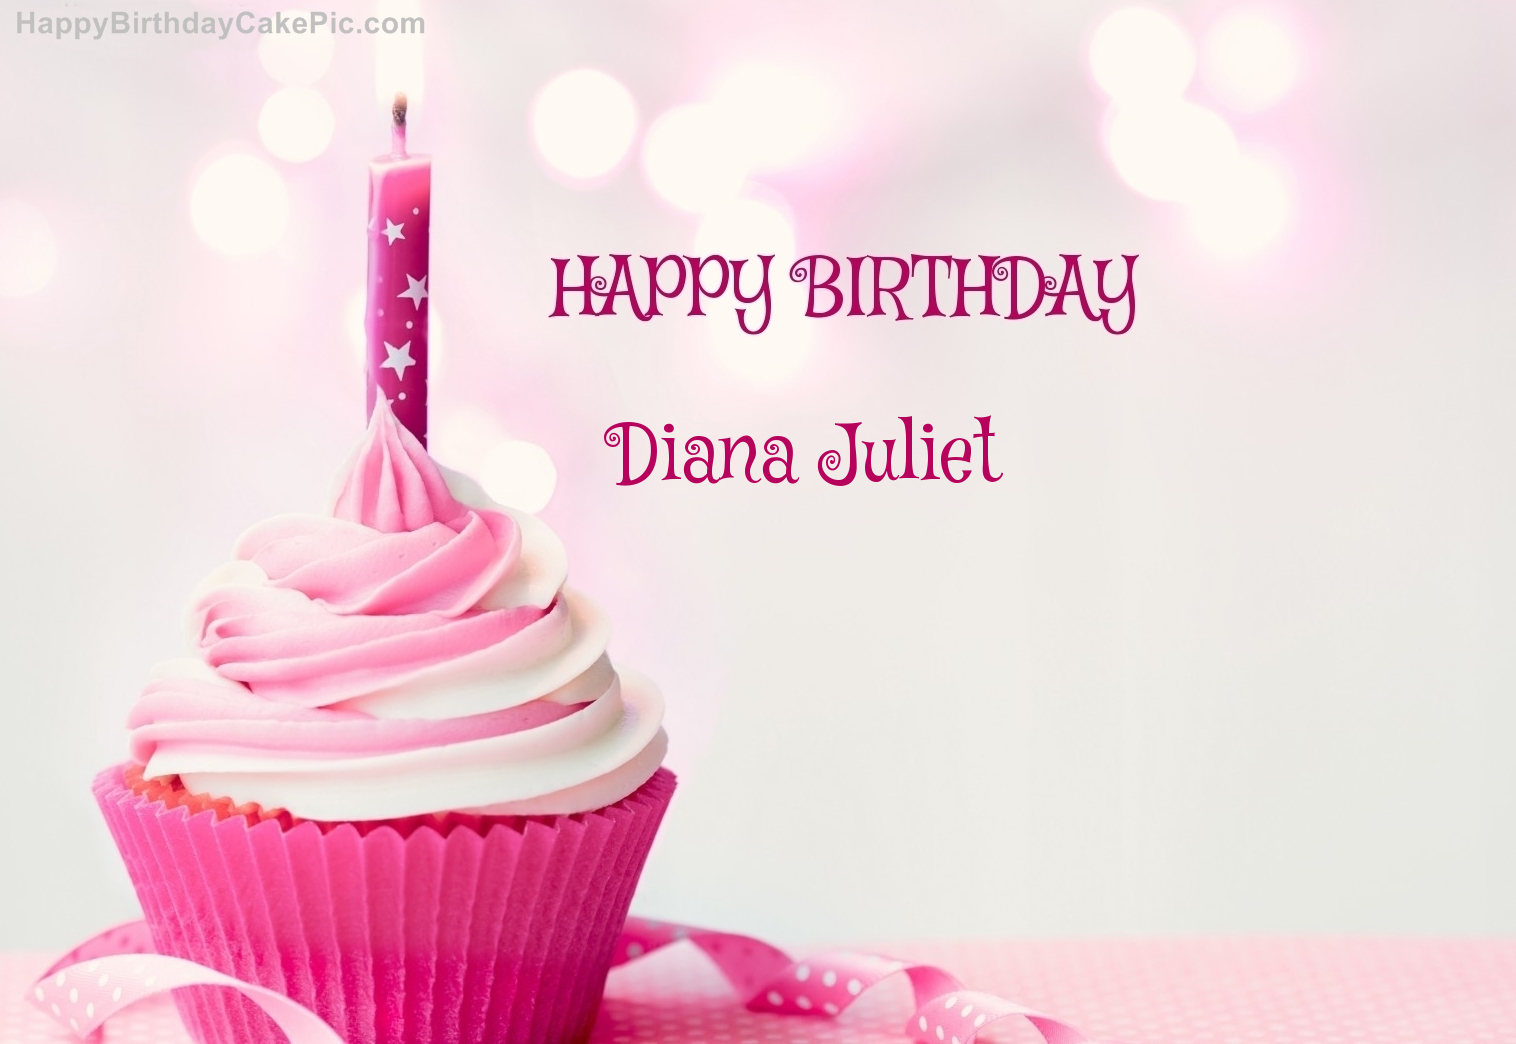 Happy Birthday Diana Cake Happy Birthday Cupcake Candle Pink Cake For Diana Juliet